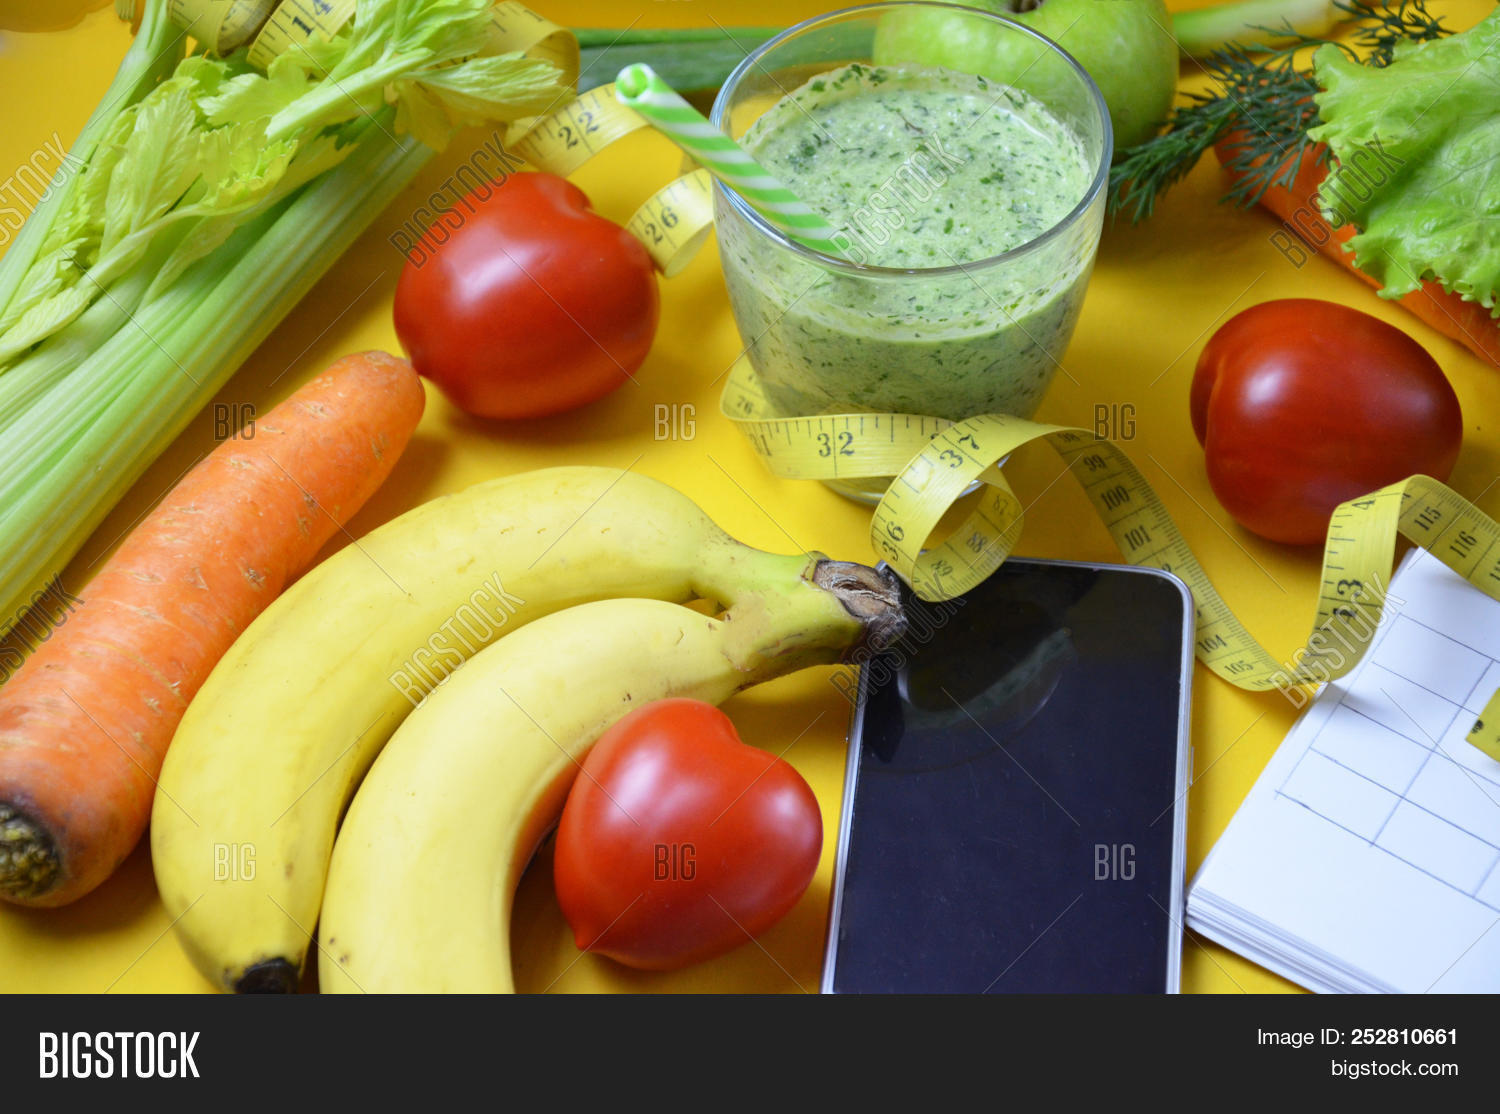 Using Calorie Counter Image & Photo (Free Trial) | Bigstock